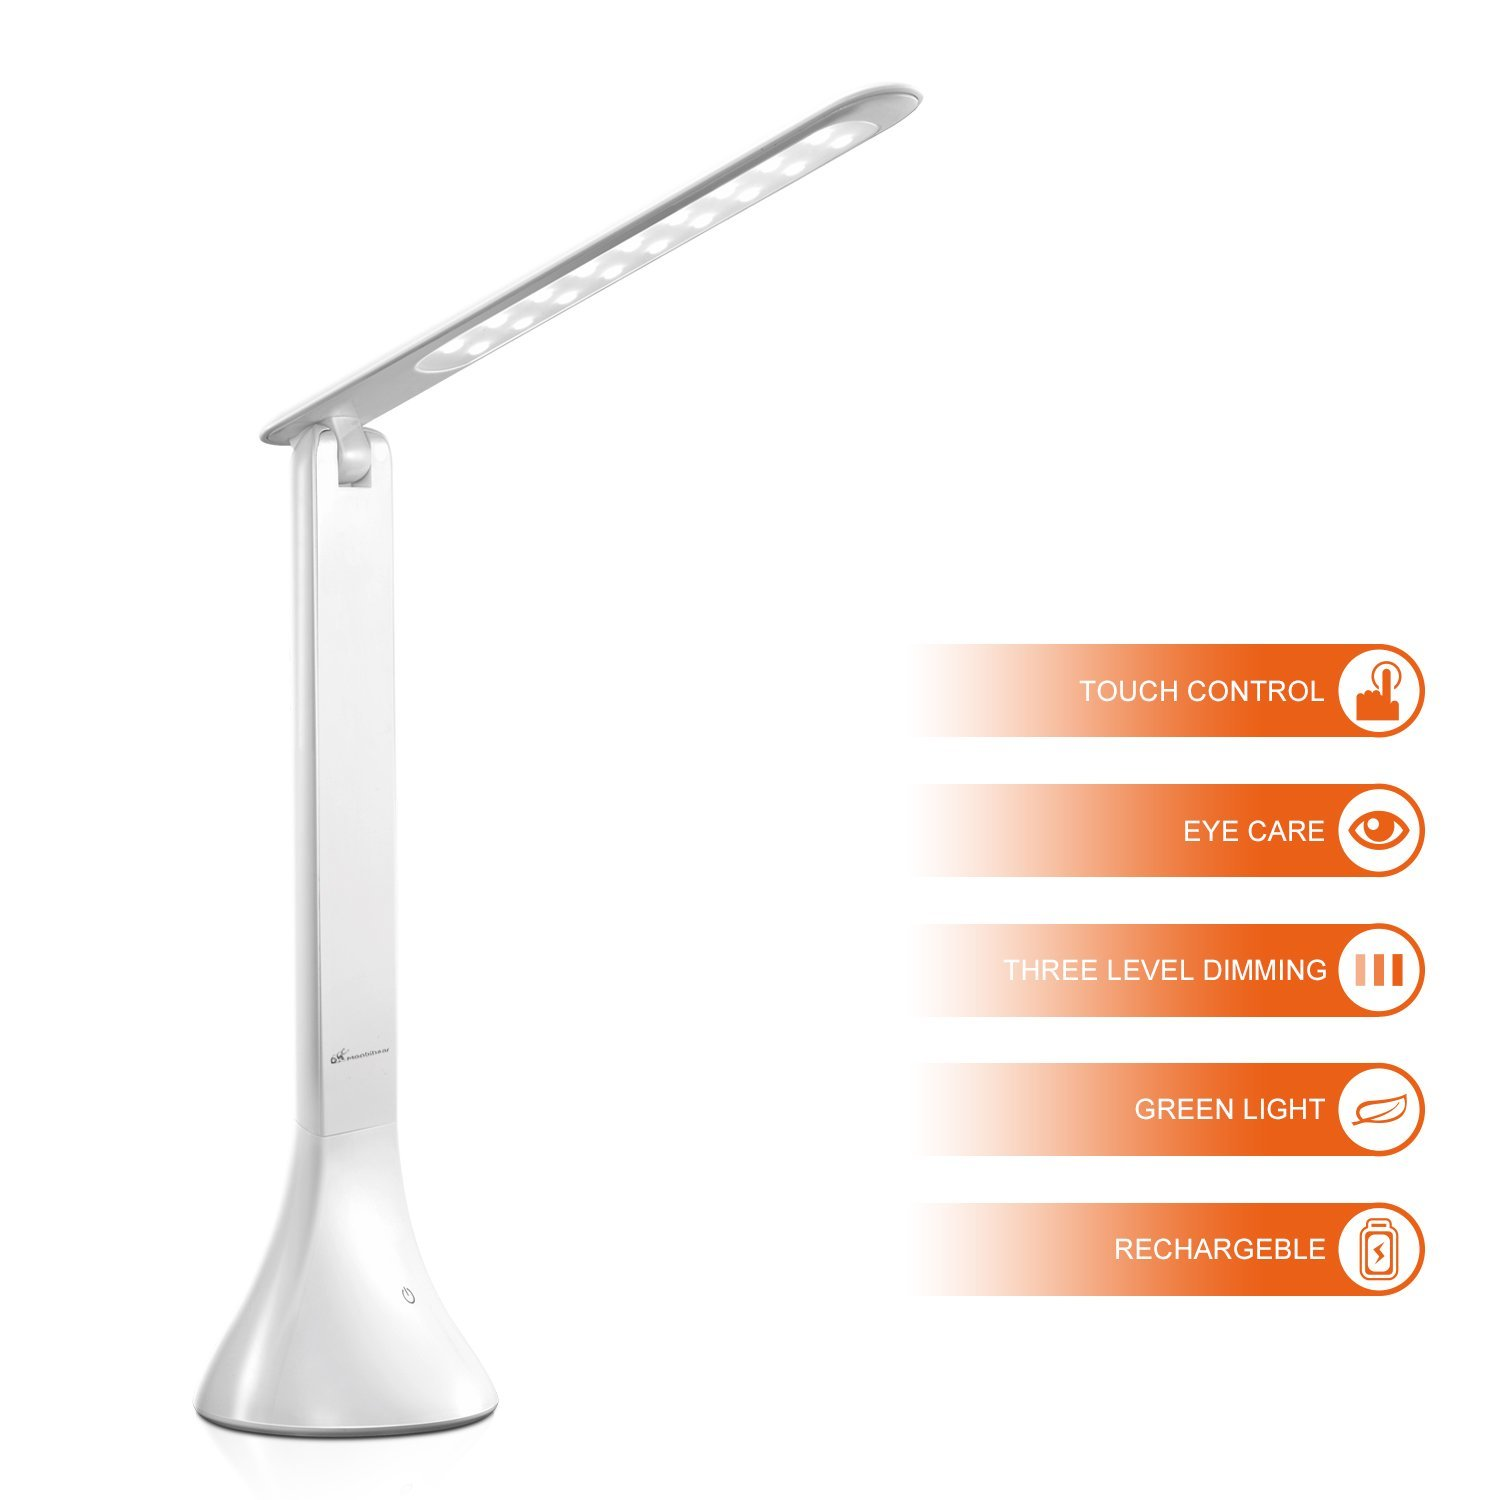 Moobibear Dimmable LED Desk Lamps 3 Level Brightness Touch-Sensitive Switch Small Daylight Folding Portable Table Reading Cordless Lamps White with Li-ion Rechargeable Battery USB Charger